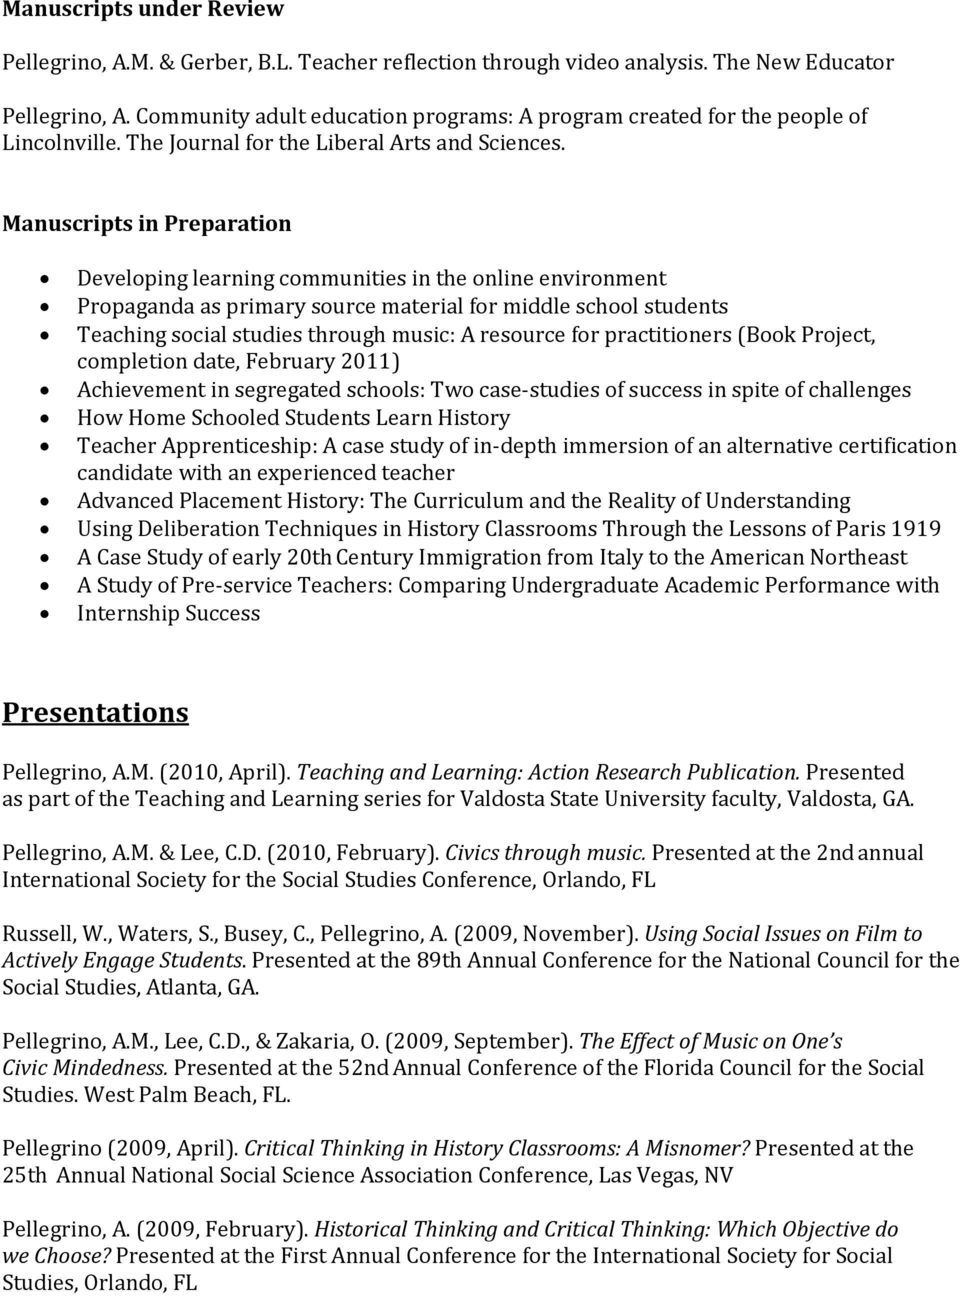 Manuscripts in Preparation Developing learning communities in the online environment Propaganda as primary source material for middle school students Teaching social studies through music: A resource